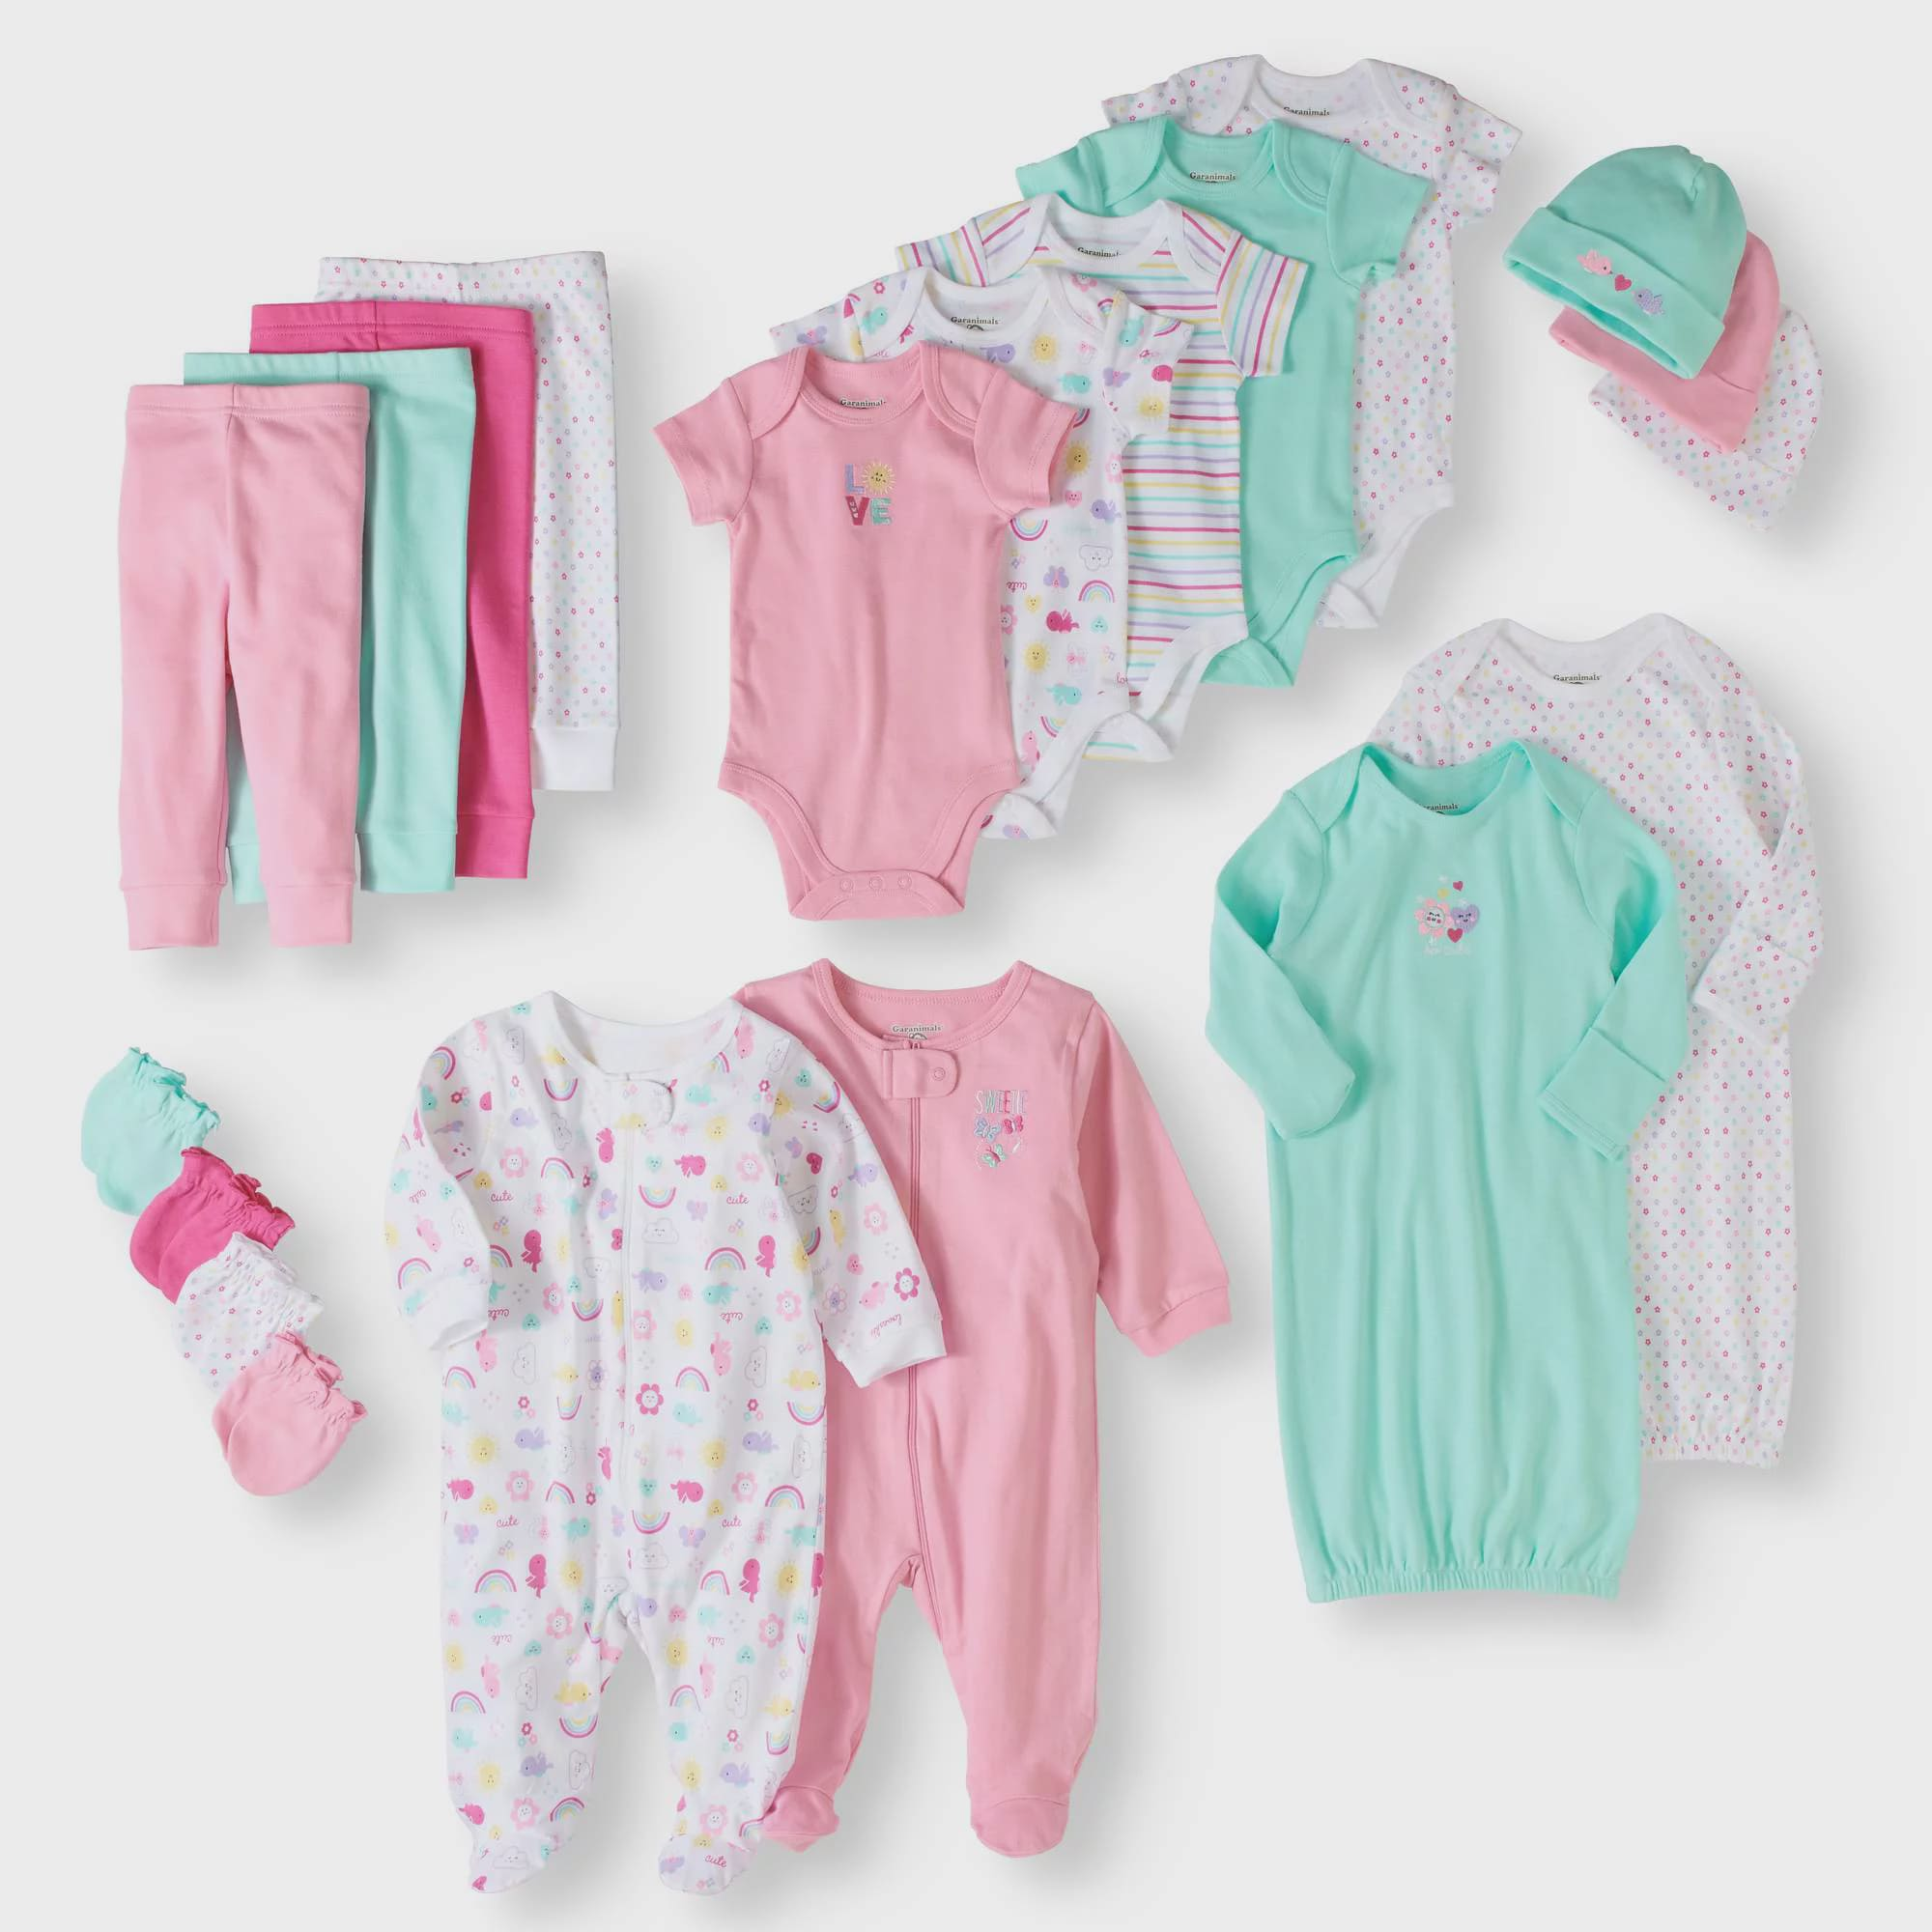 Newborn Baby Girl 20 Piece Layette Baby Shower Gift Set by